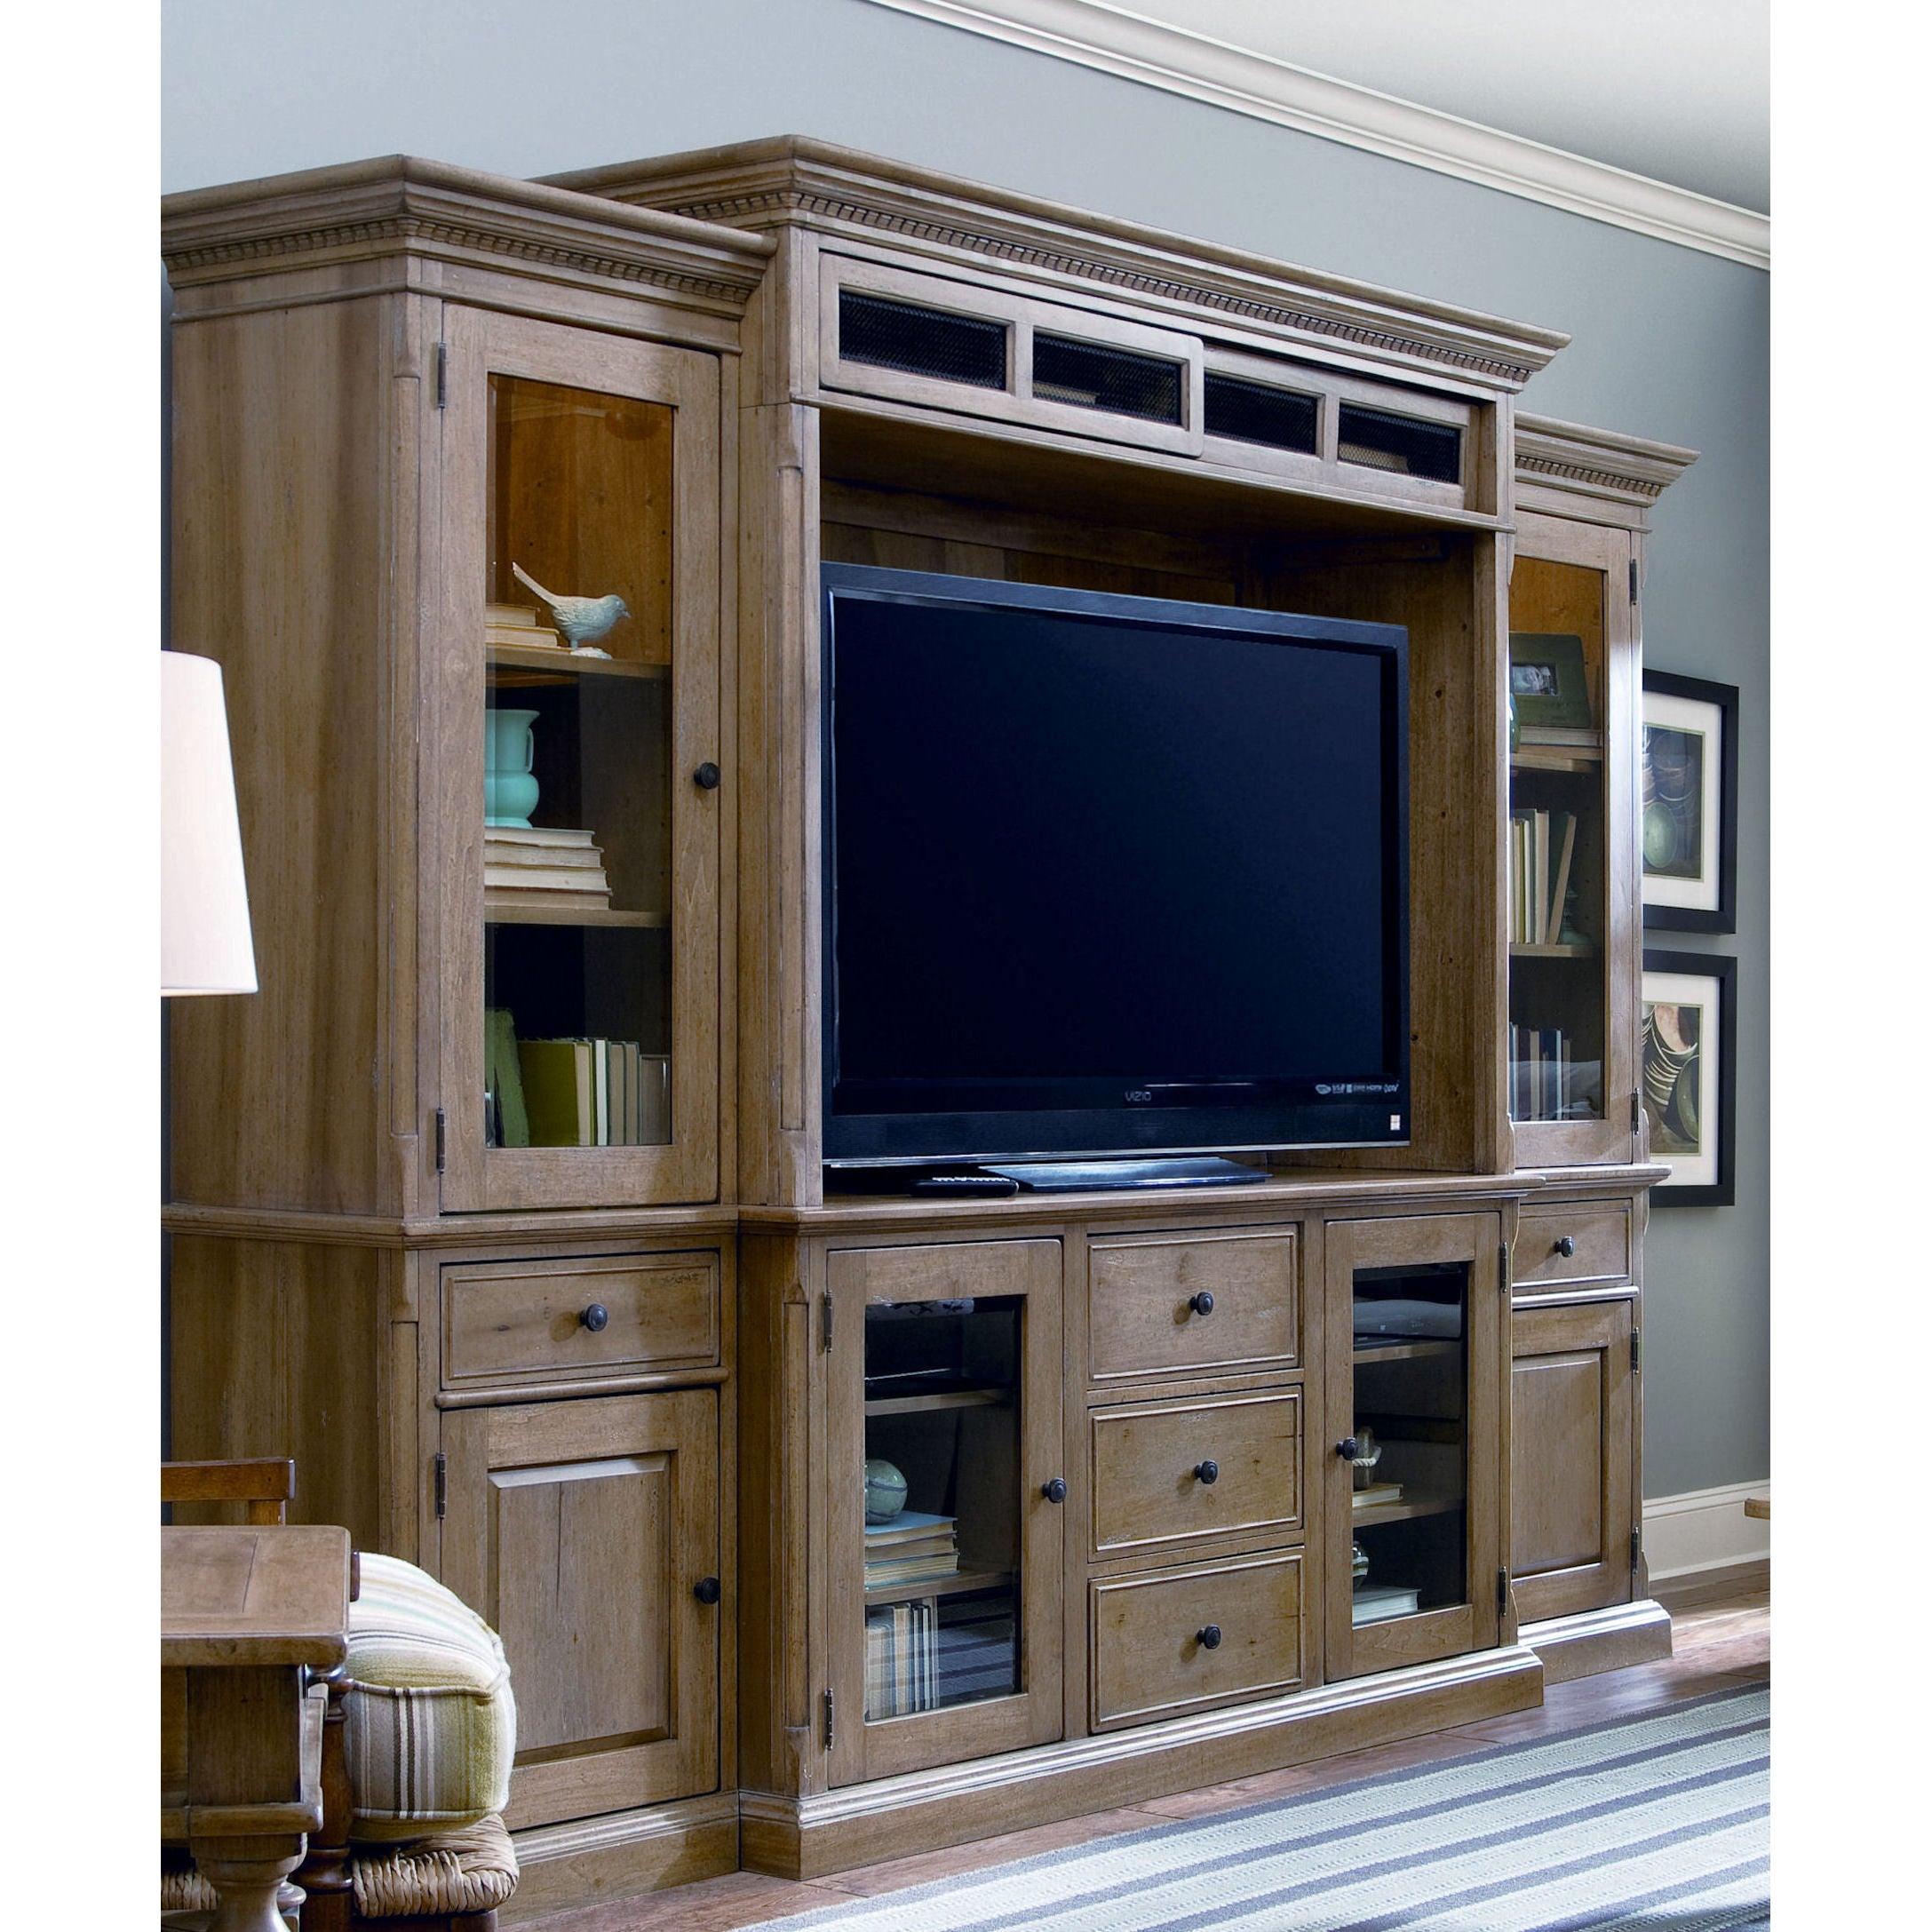 Merveilleux Shop Paula Deen Down Home Oatmeal Home Entertainment Wall System   Free  Shipping Today   Overstock.com   12247613